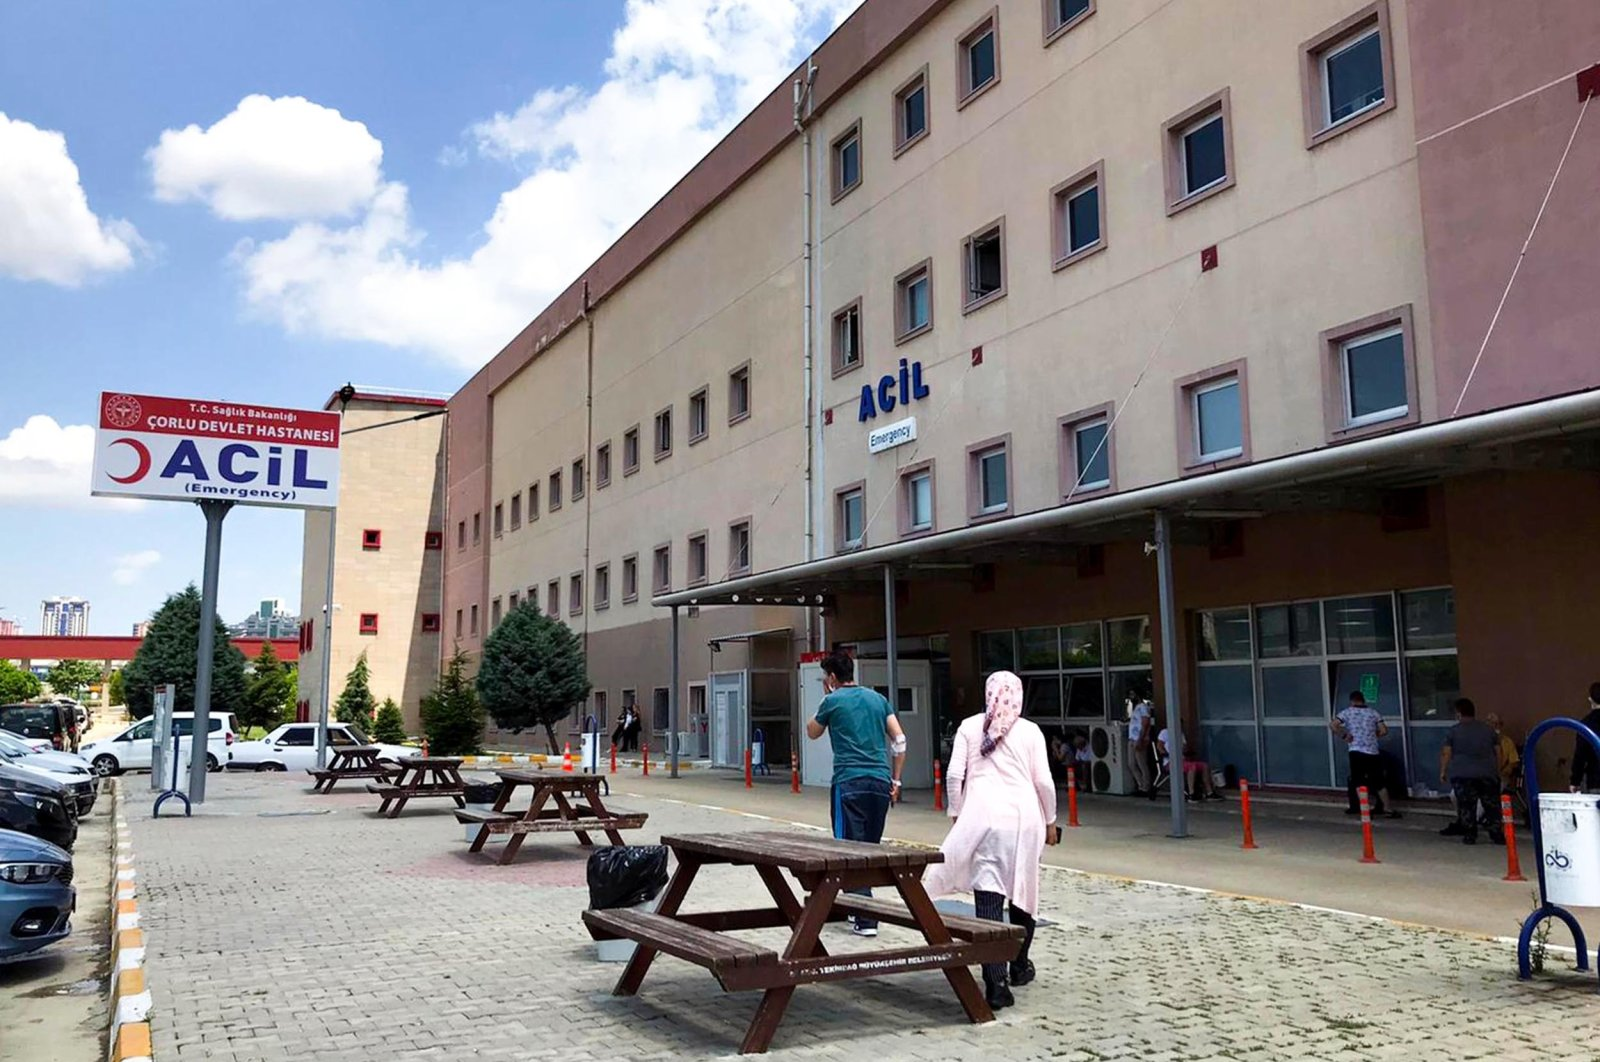 External view of a hospital in Çorlu district where victims are hospitalized, in Tekirdağ, northwestern Turkey, June 28, 2021. (DHA PHOTO)